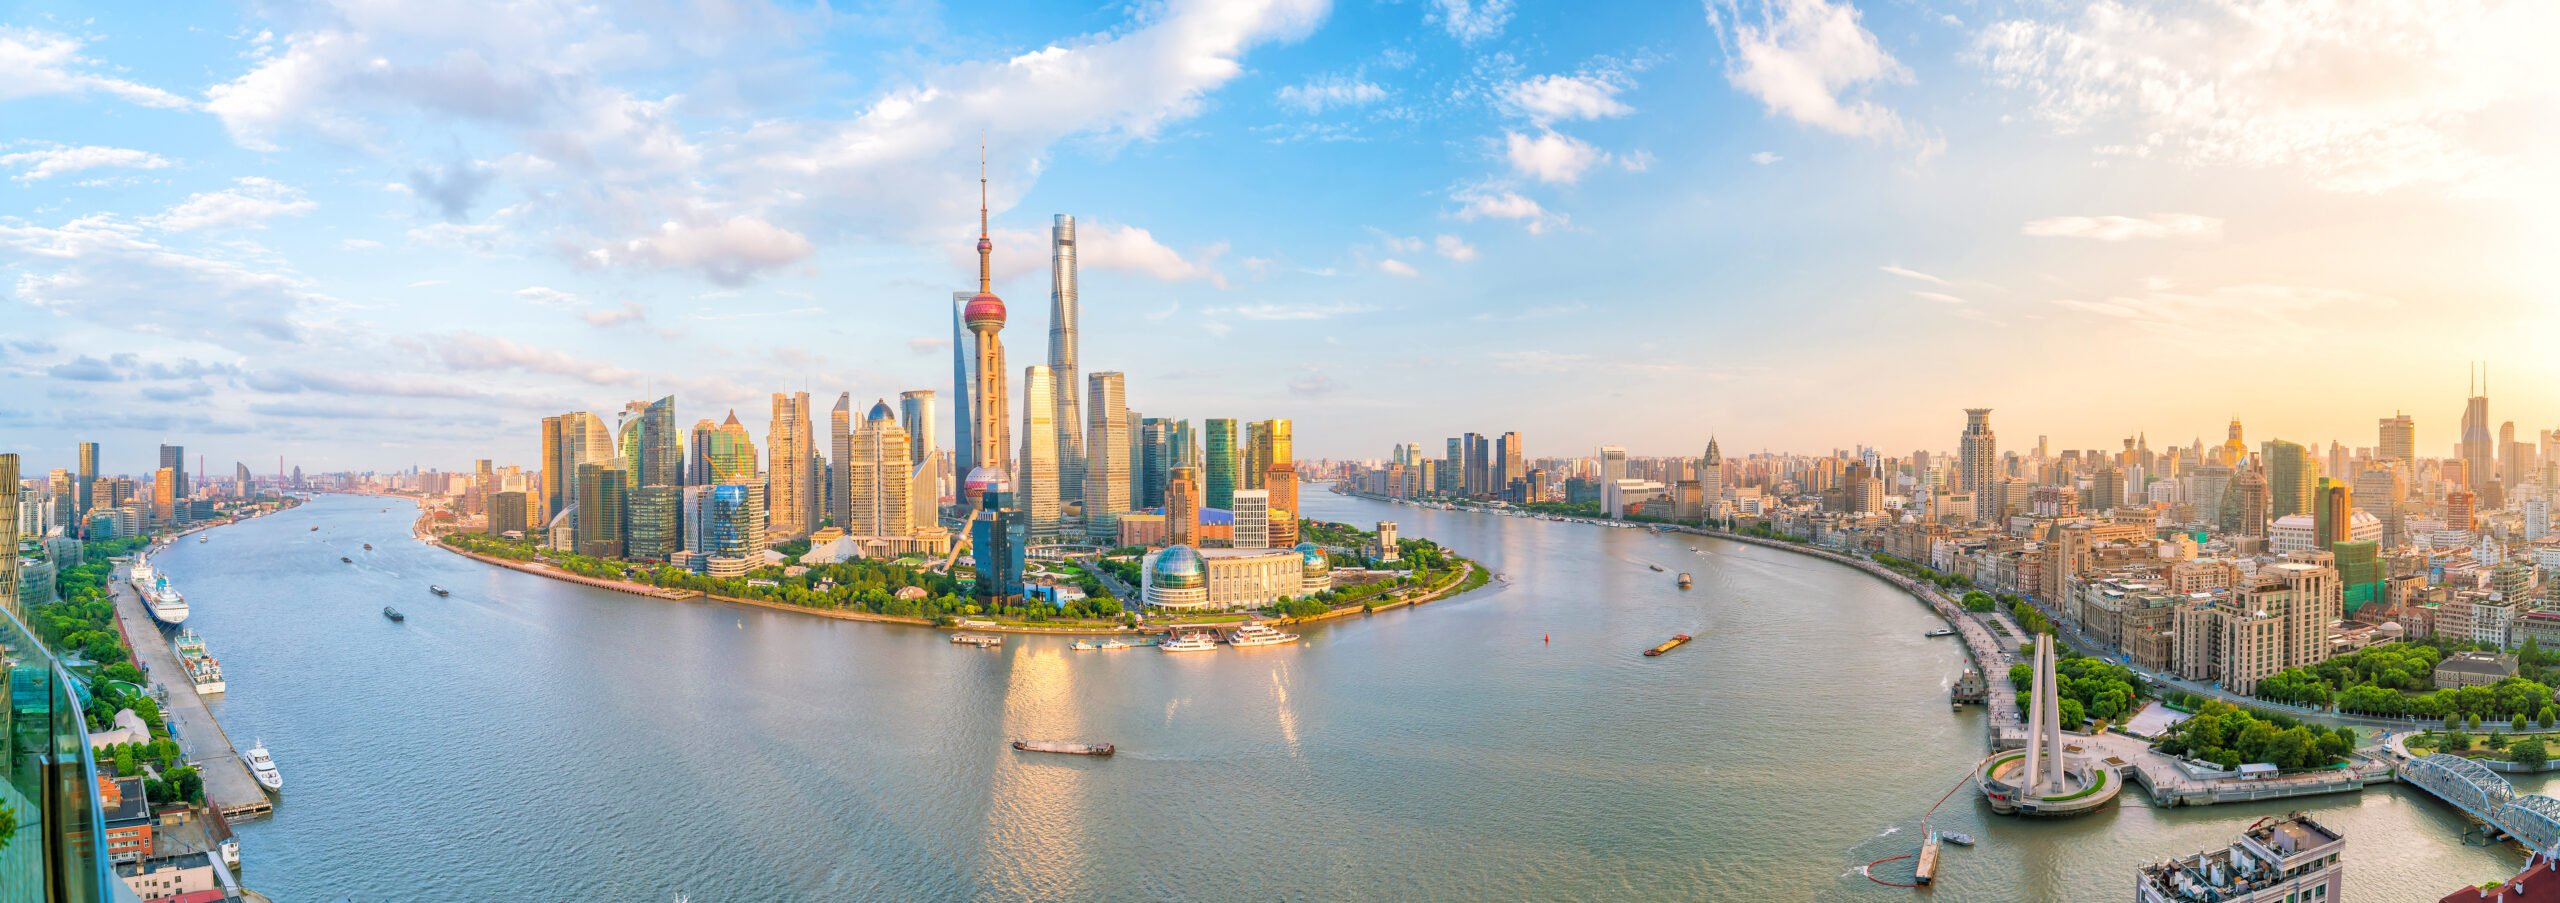 View The Famous Shanghai Skyline In Our Best Of Shanghai Private Day Tour